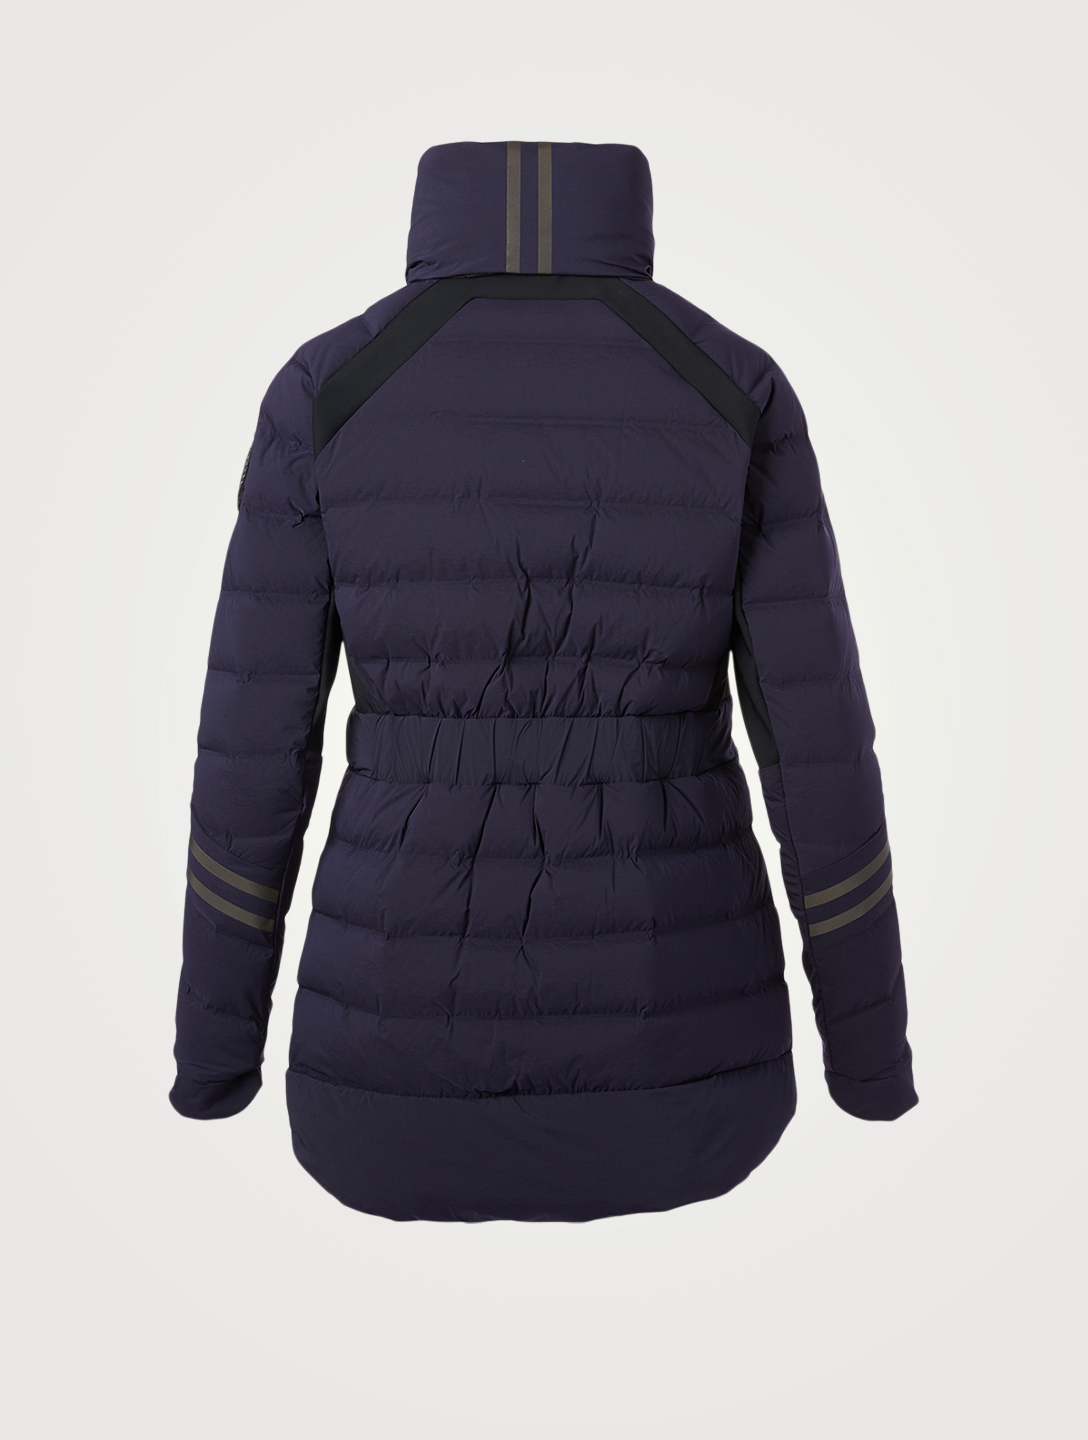 CANADA GOOSE Meanteau Hybridge CW Black Label Femmes Bleu